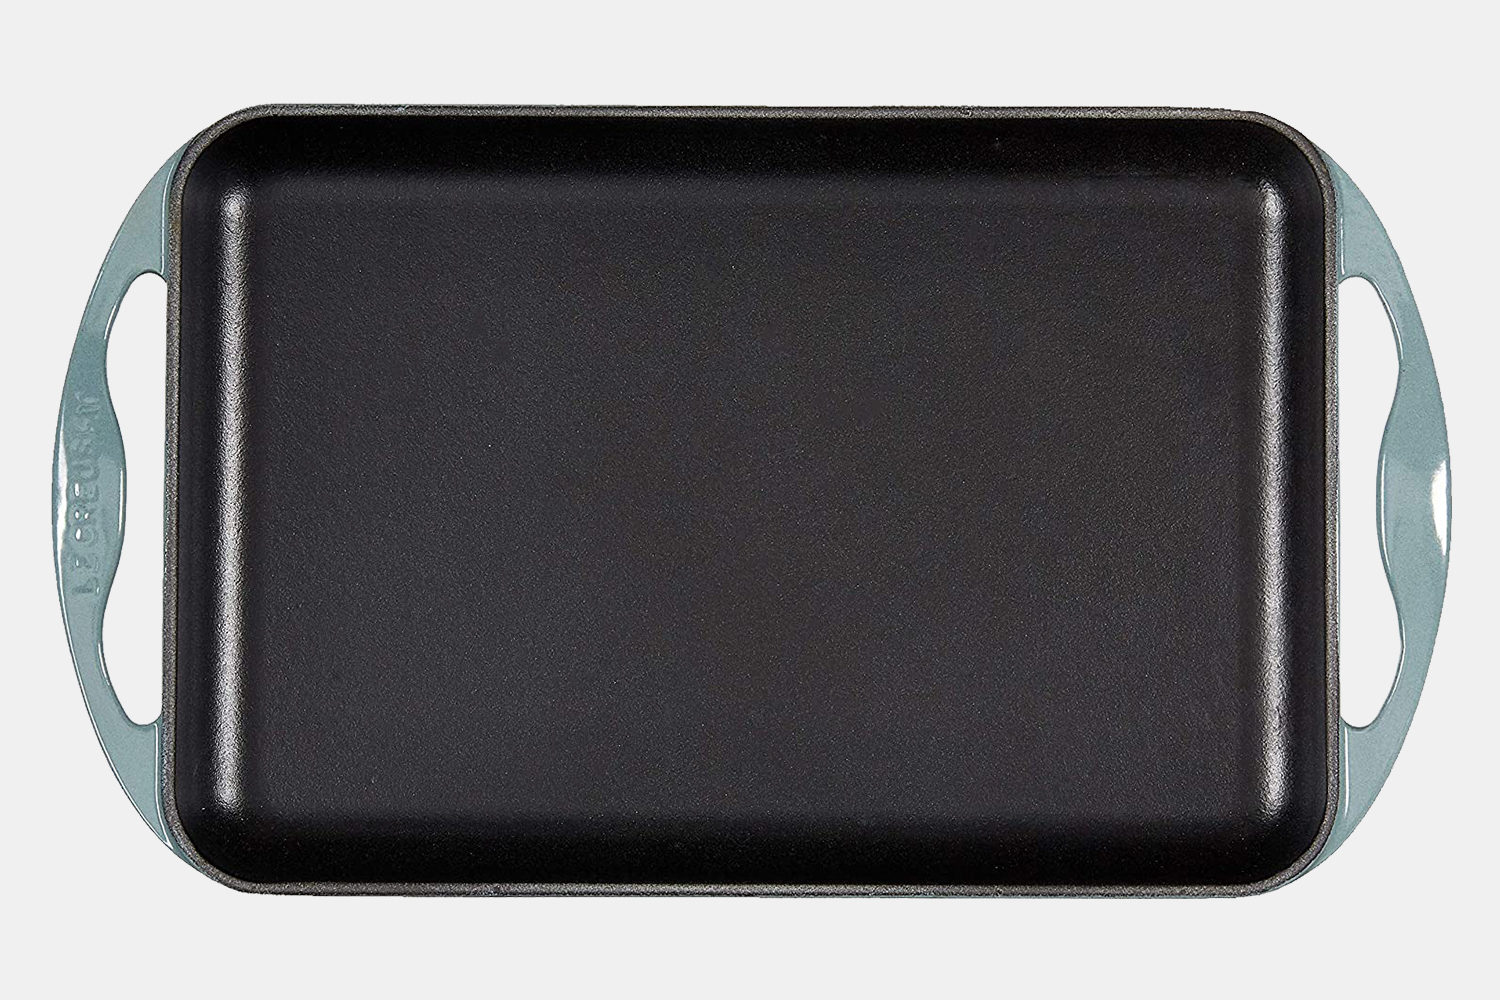 Le Creuset Enameled Cast Iron Griddle